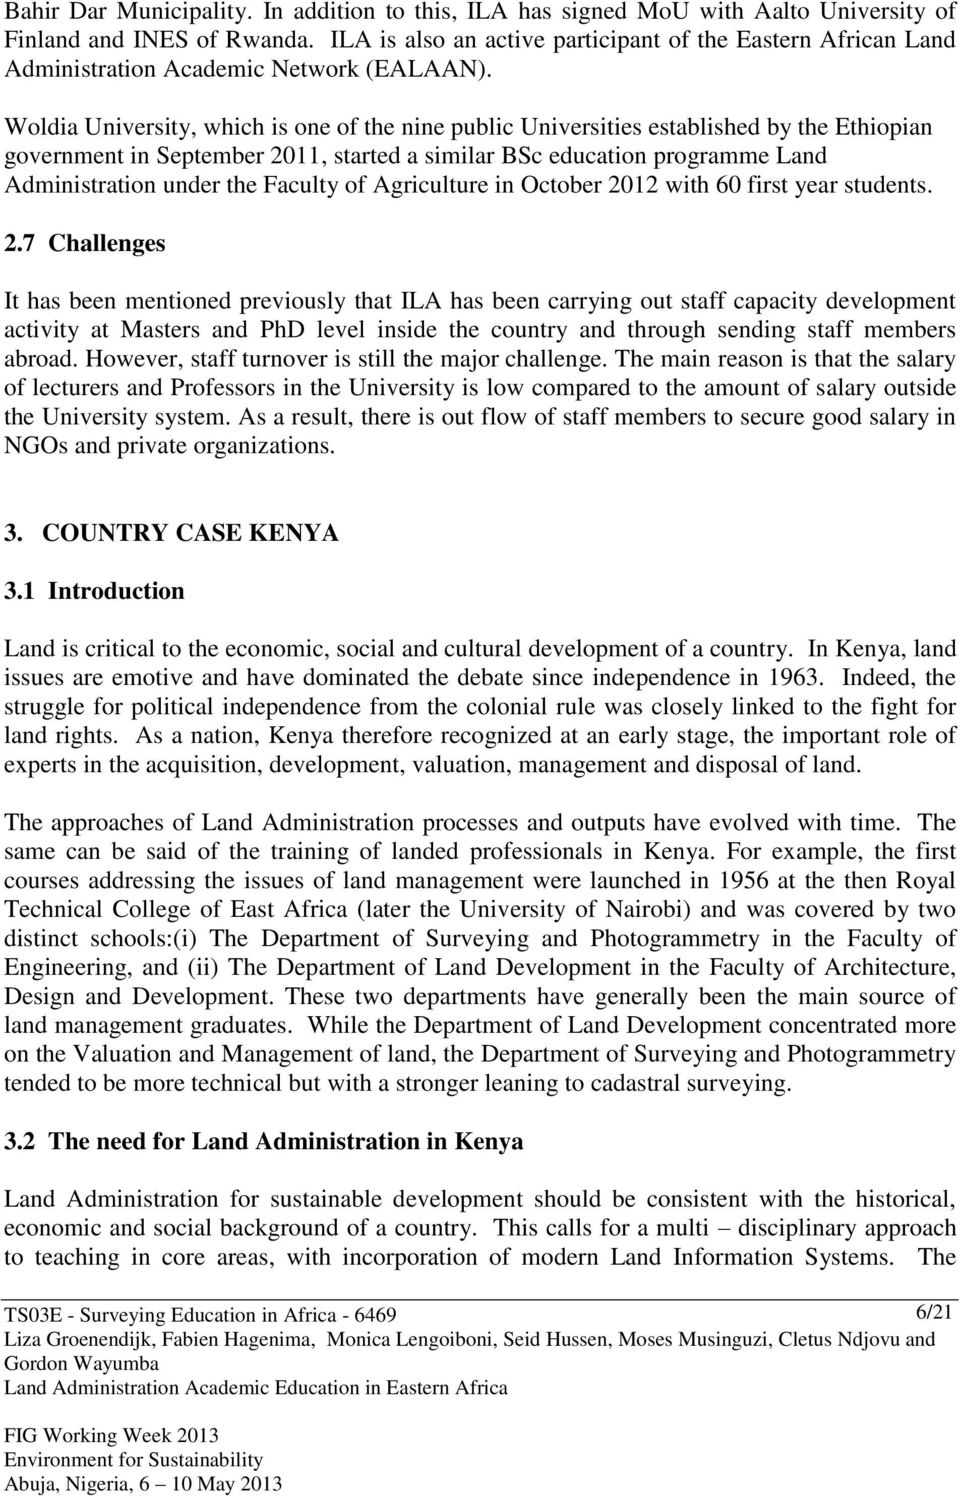 Land Administration Academic Education in Eastern Africa - PDF